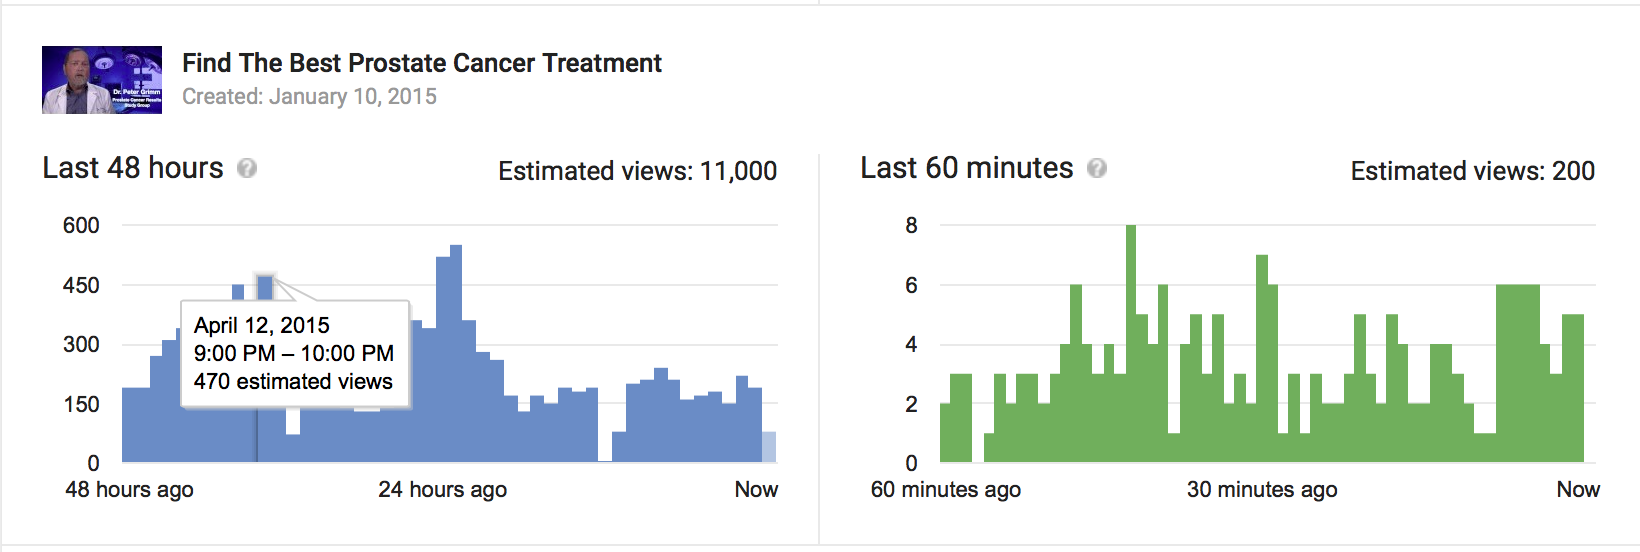 Analytics View Count Incorrect vs Real Time Data - Includes